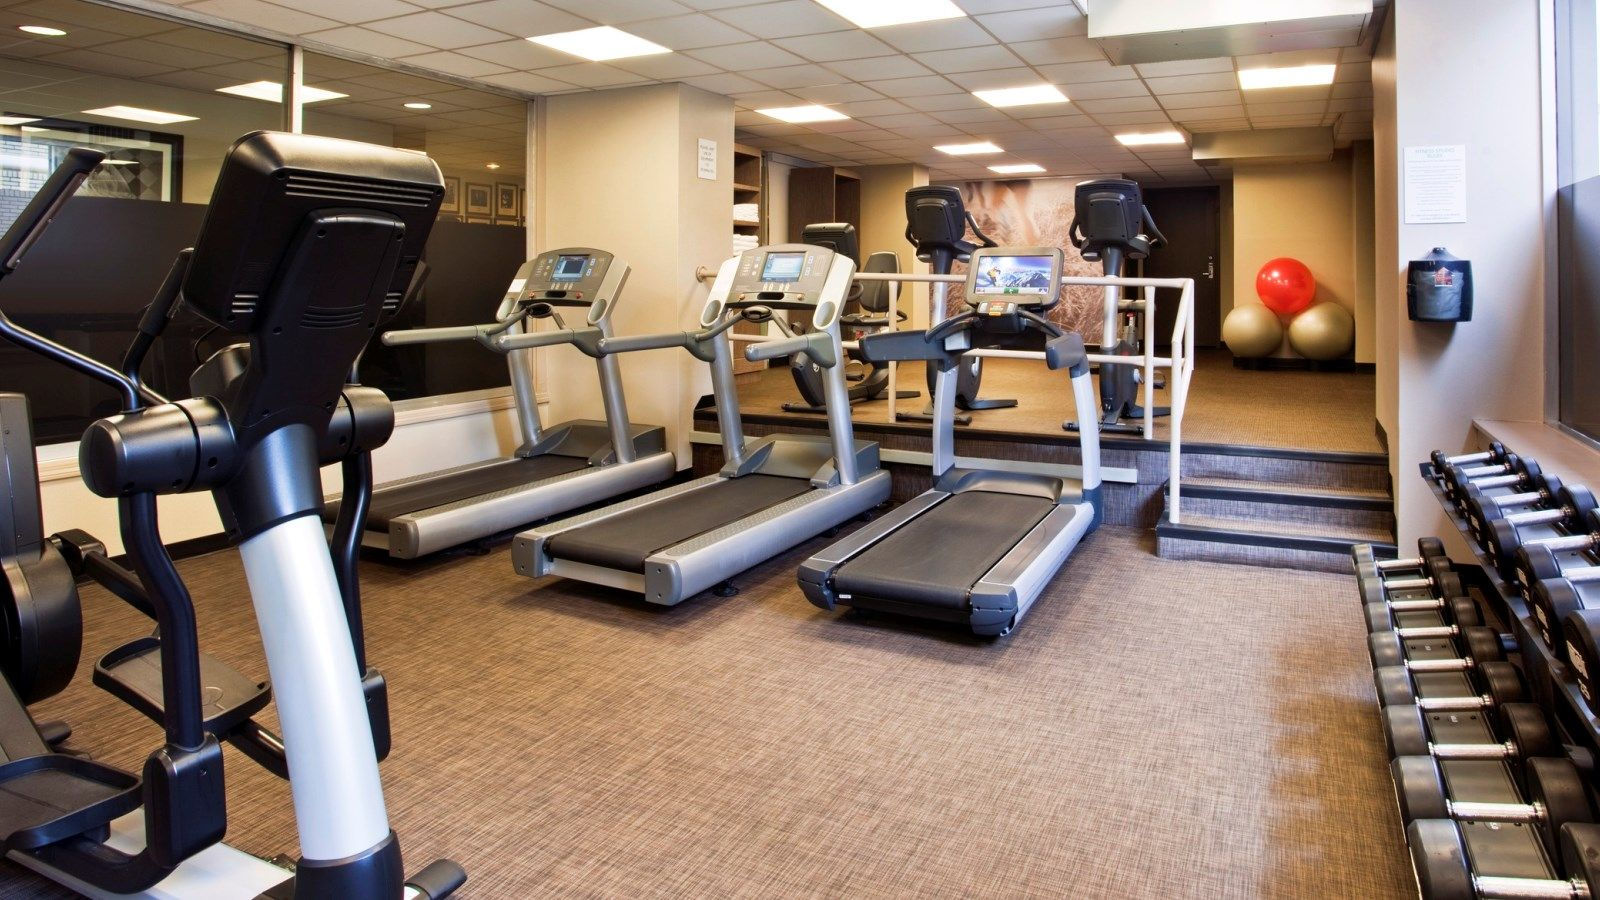 WestinWORKOUT® Fitness Studio at The Westin Poinsett